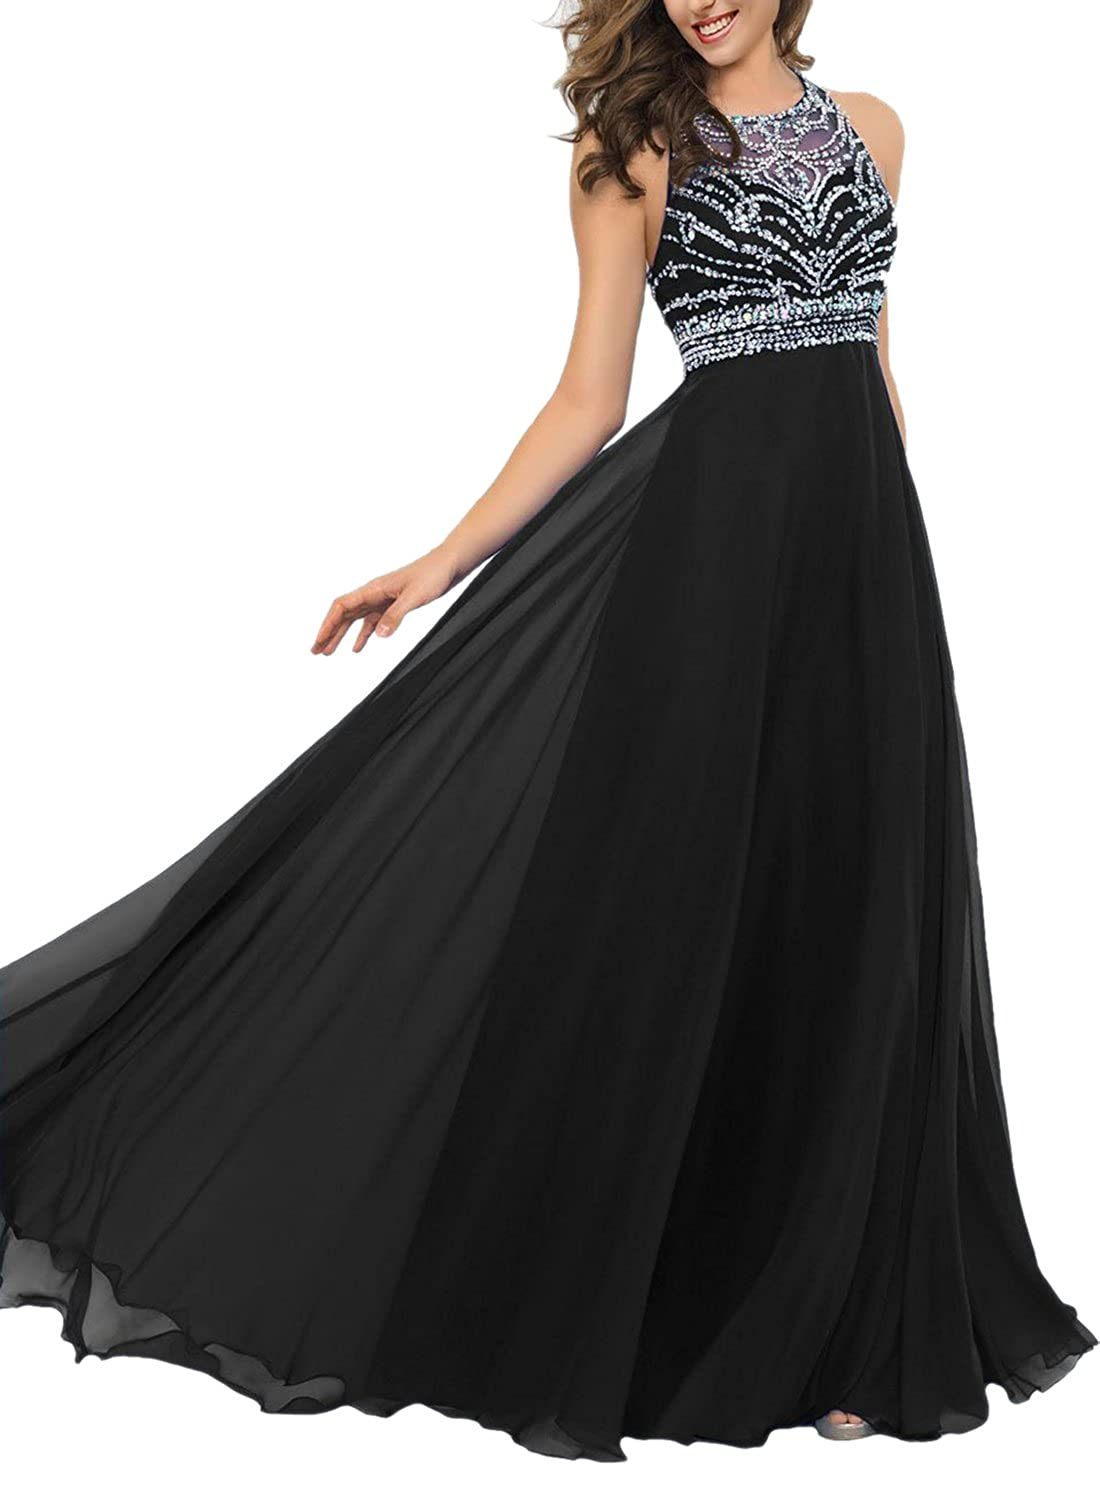 Promonline long prom dresses chiffon beaded jewel evening gowns